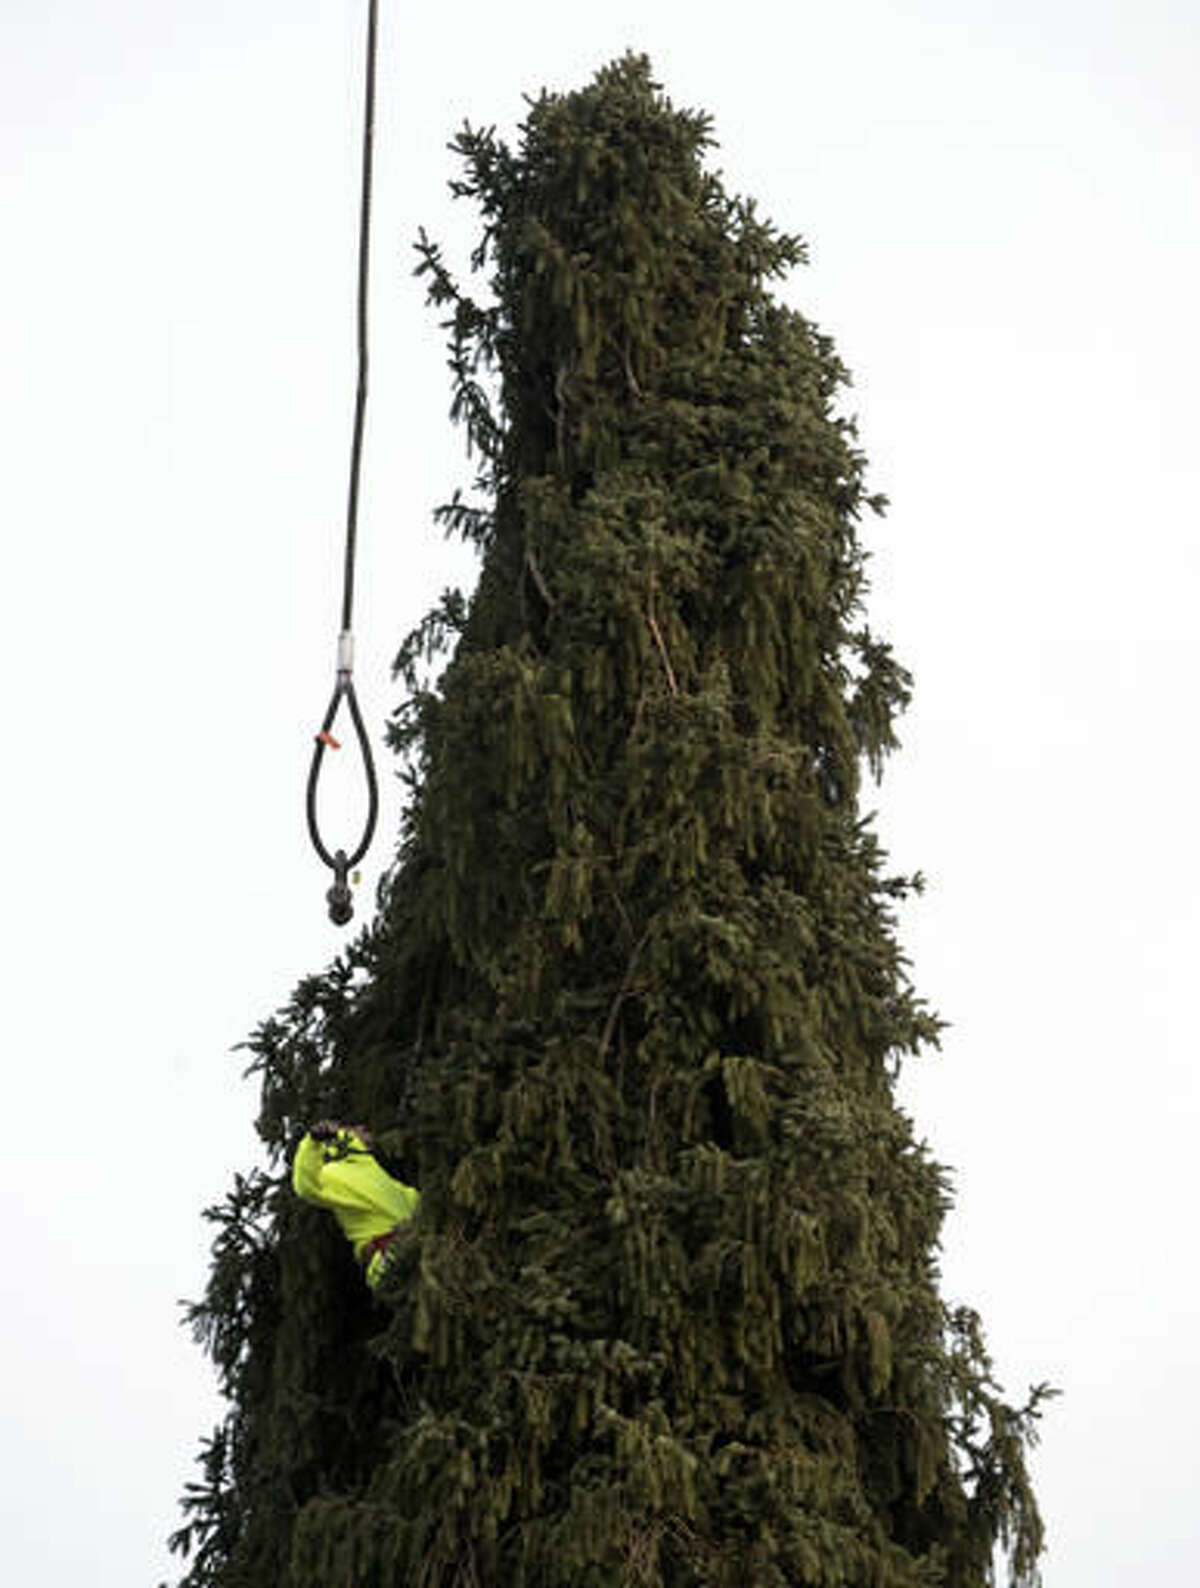 A worker prepares a 94-foot Norway spruce that will serve as the Christmas tree at Rockefeller Center before it is cut on Thursday, Nov. 10, 2016, in Oneonta, N.Y. The spruce is due to arrive Saturday in Manhattan, about 140 miles away. (AP Photo/Mike Groll)